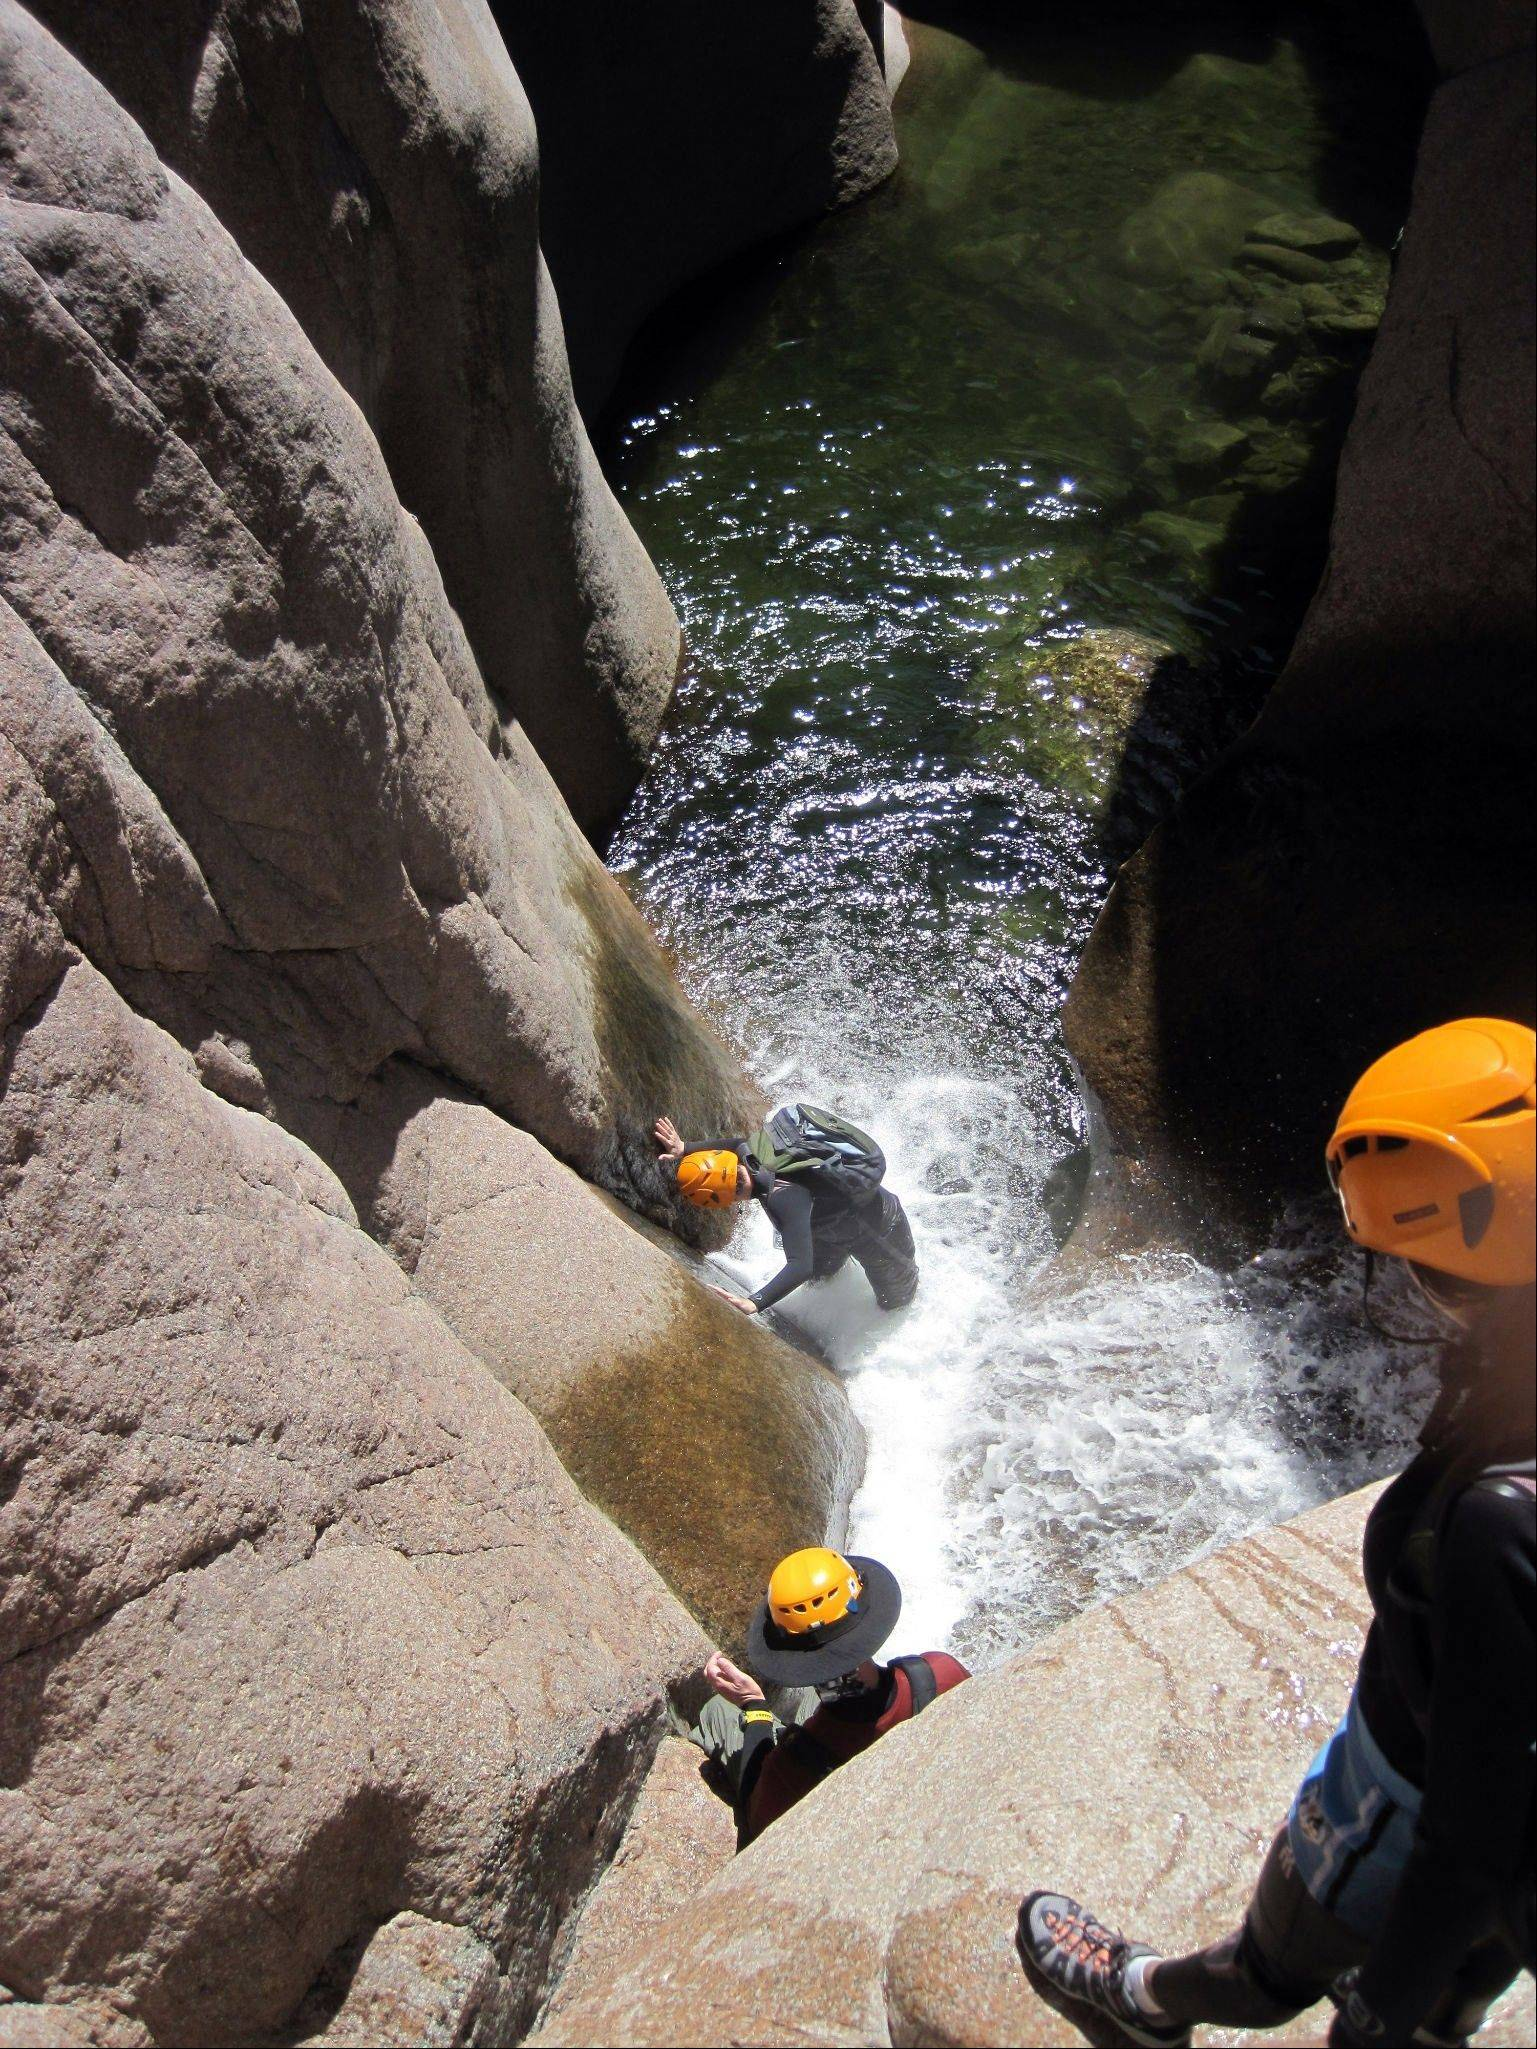 The sport of canyoneering includes hiking, climbing, sliding and wetsuit-wading.